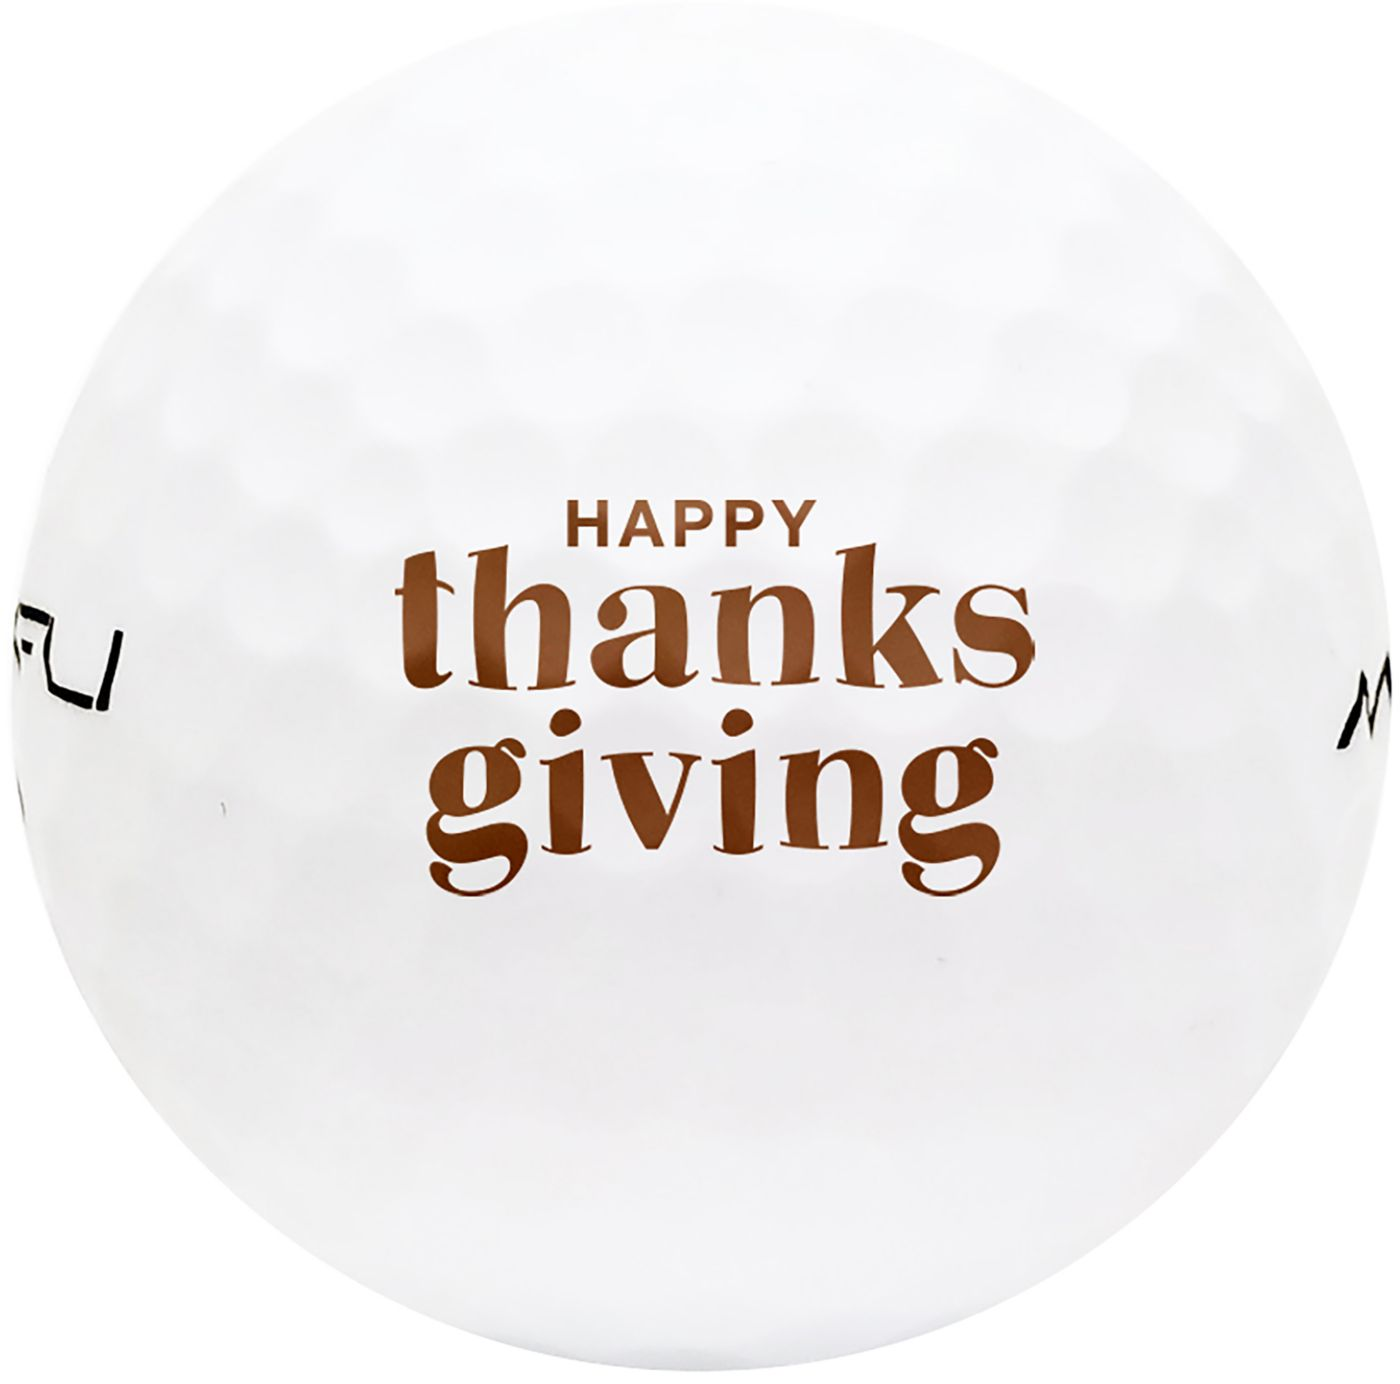 Maxfli SoftFli Thanksgiving Novelty Gloss Golf Balls